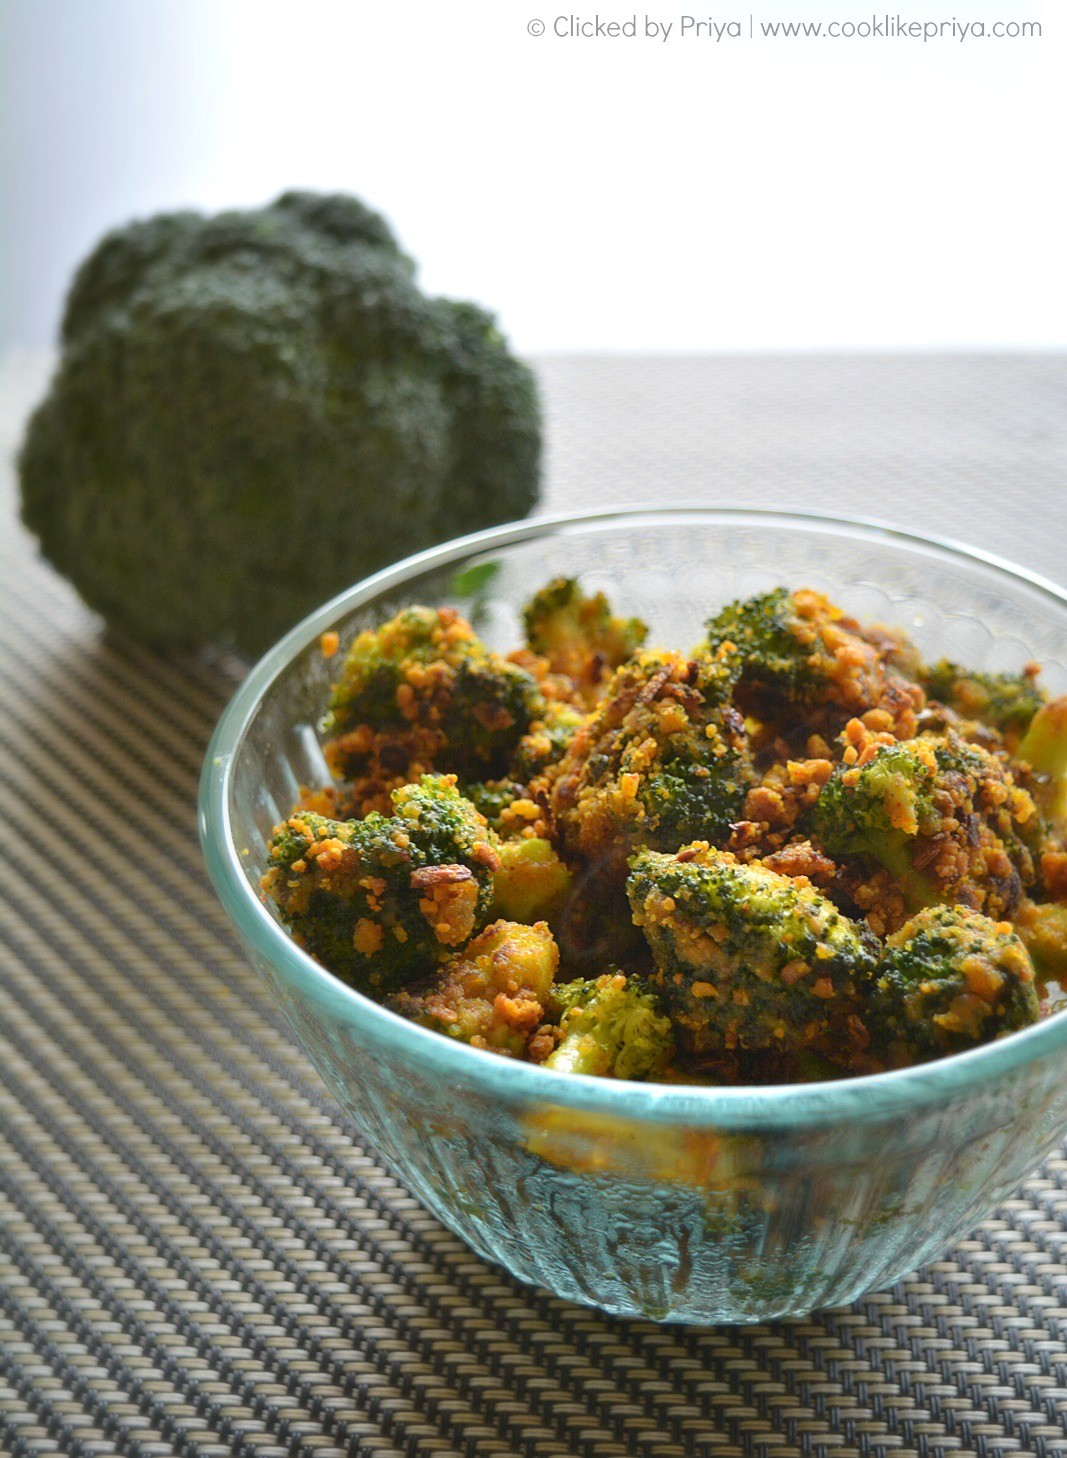 Broccoli Indian Recipe | Broccoli side dish recipe